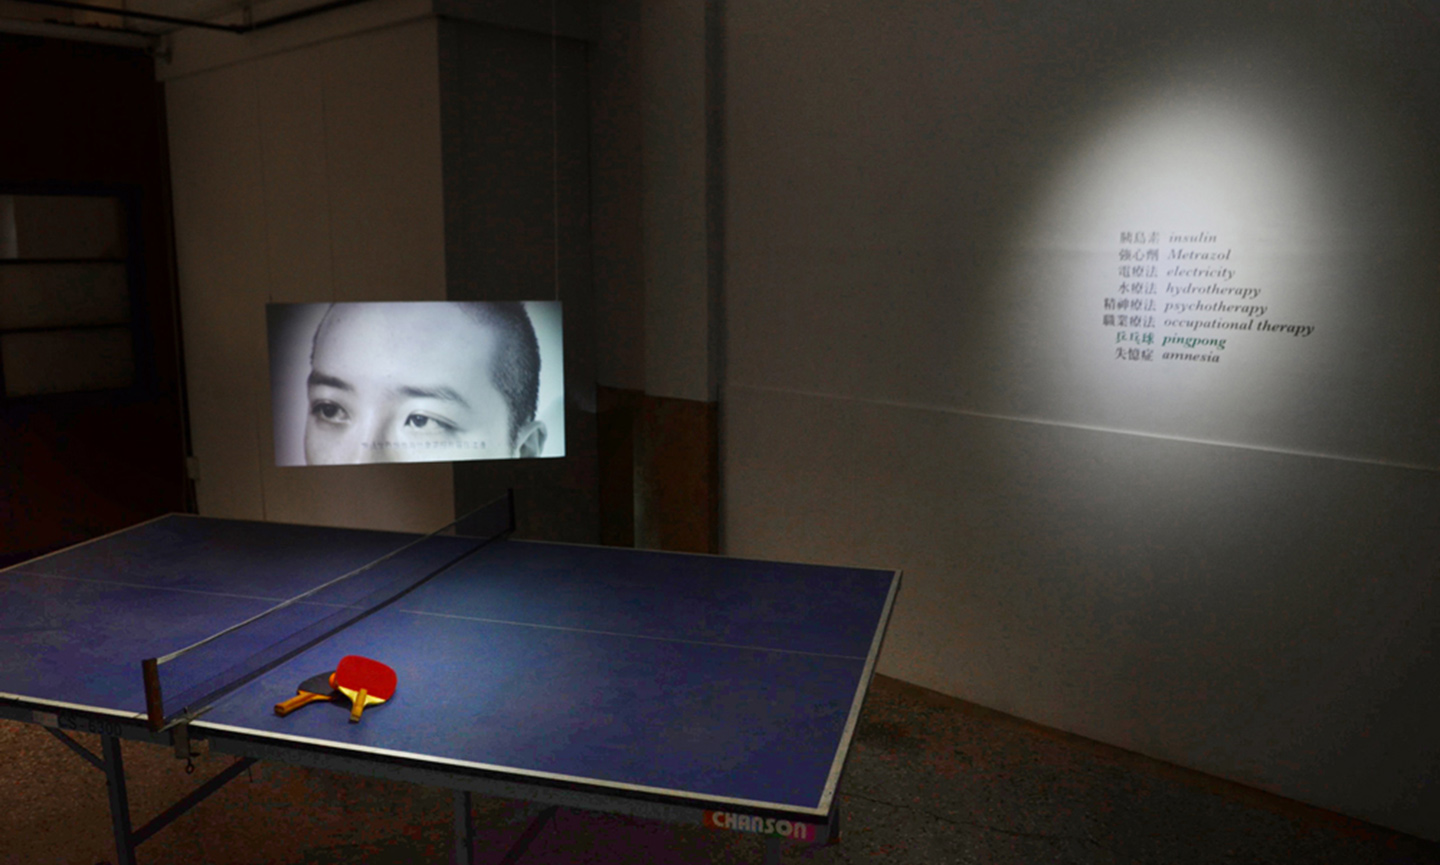 Ping pong table and video